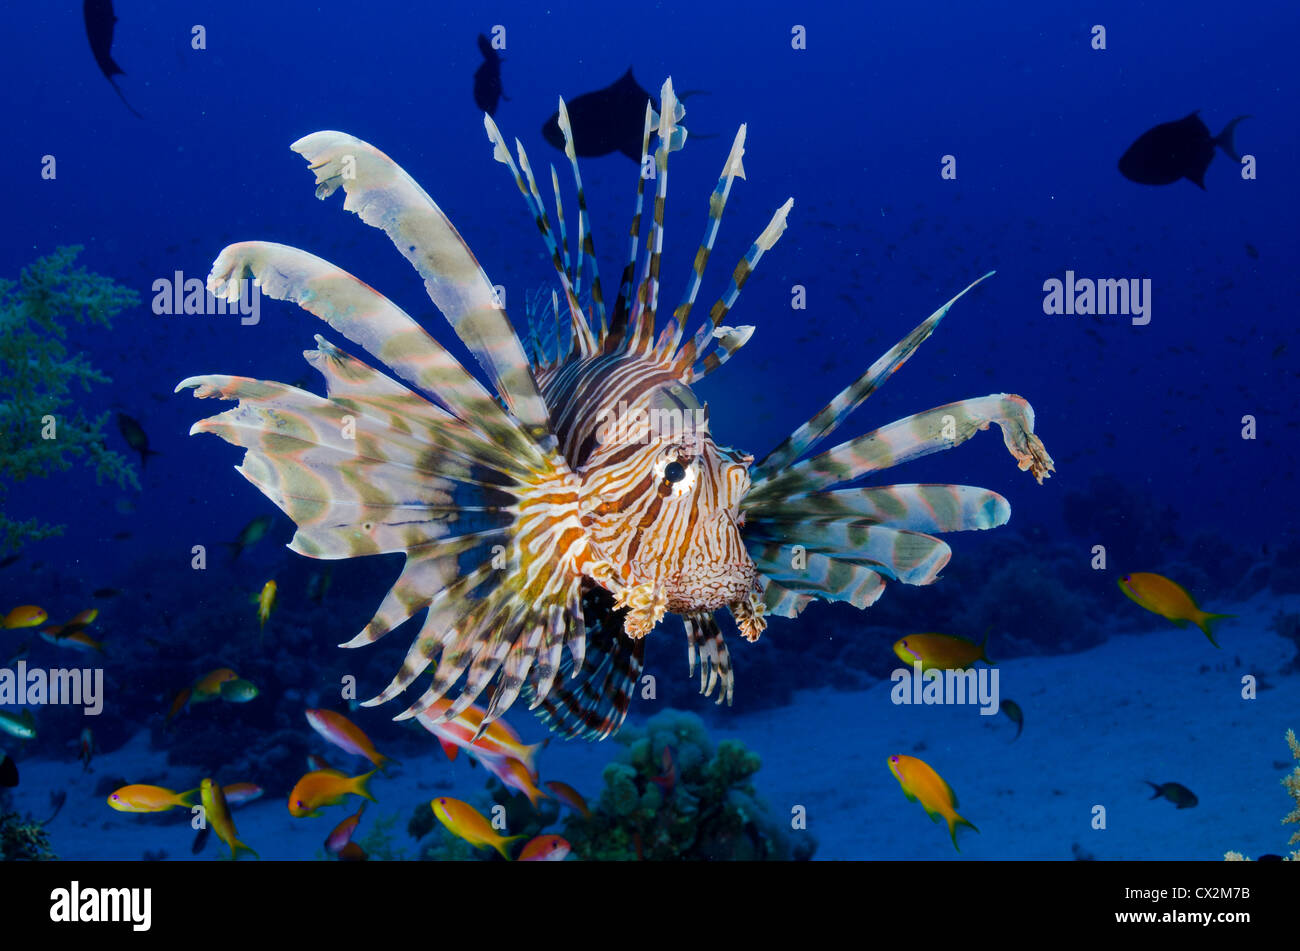 lion fish,coral reef, Red Sea, Egypt, underwater, sea life, blue water, anthias fish, tropical reef, scuba, ocean, - Stock Image